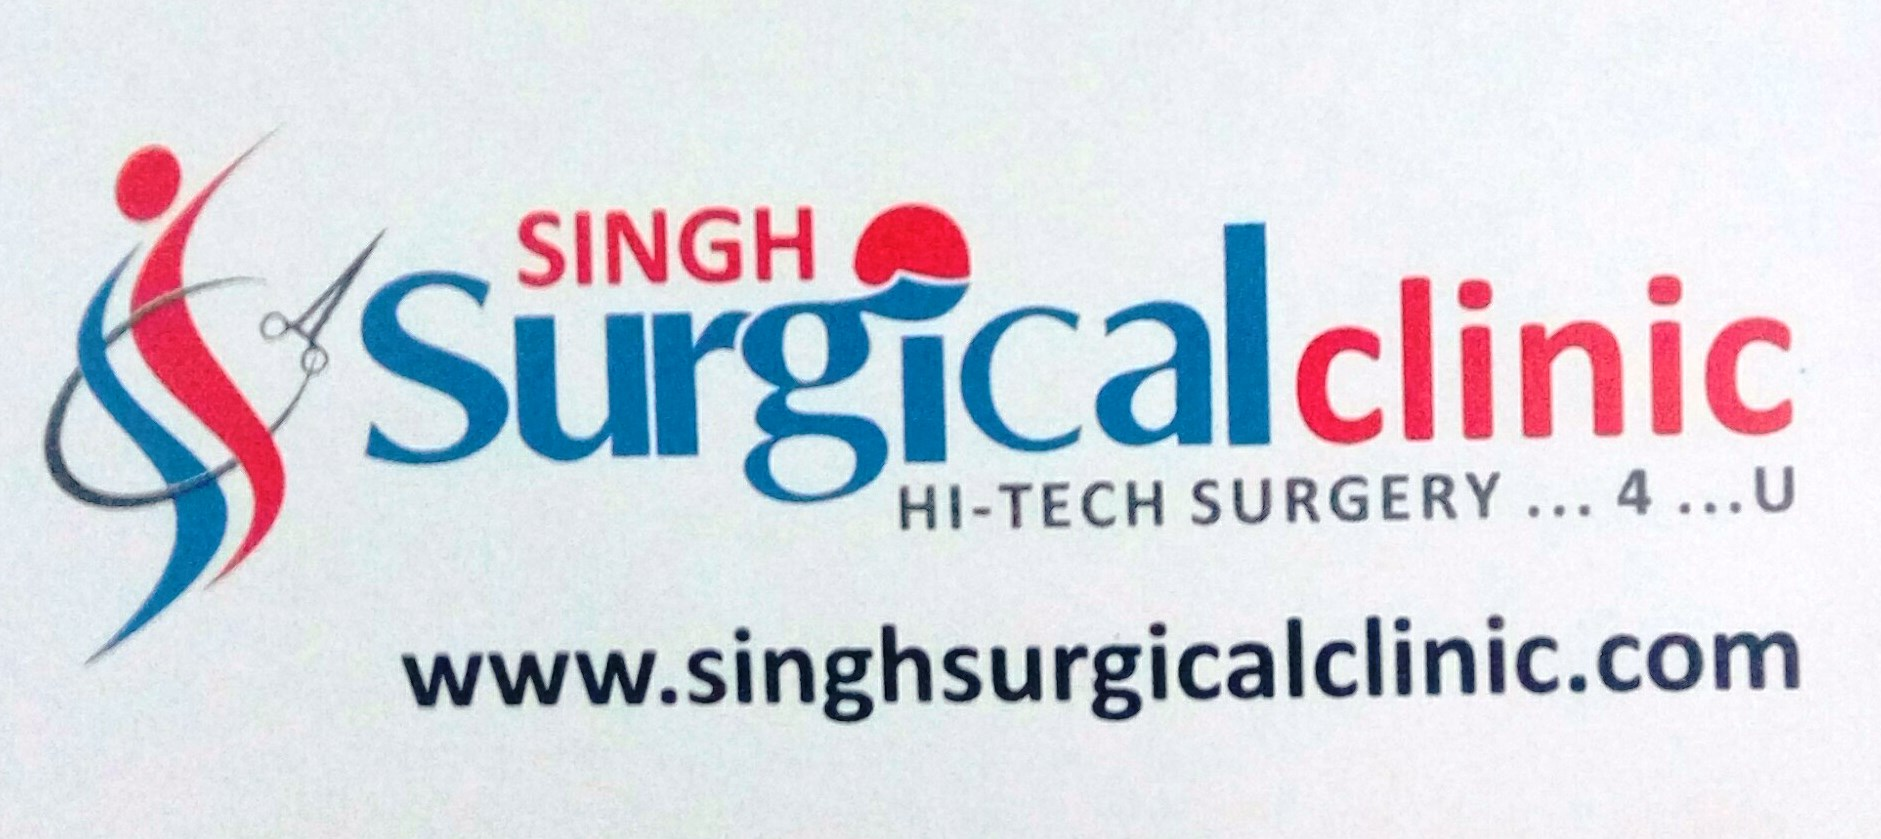 Singh Surgical Clinic, Ghaziabad